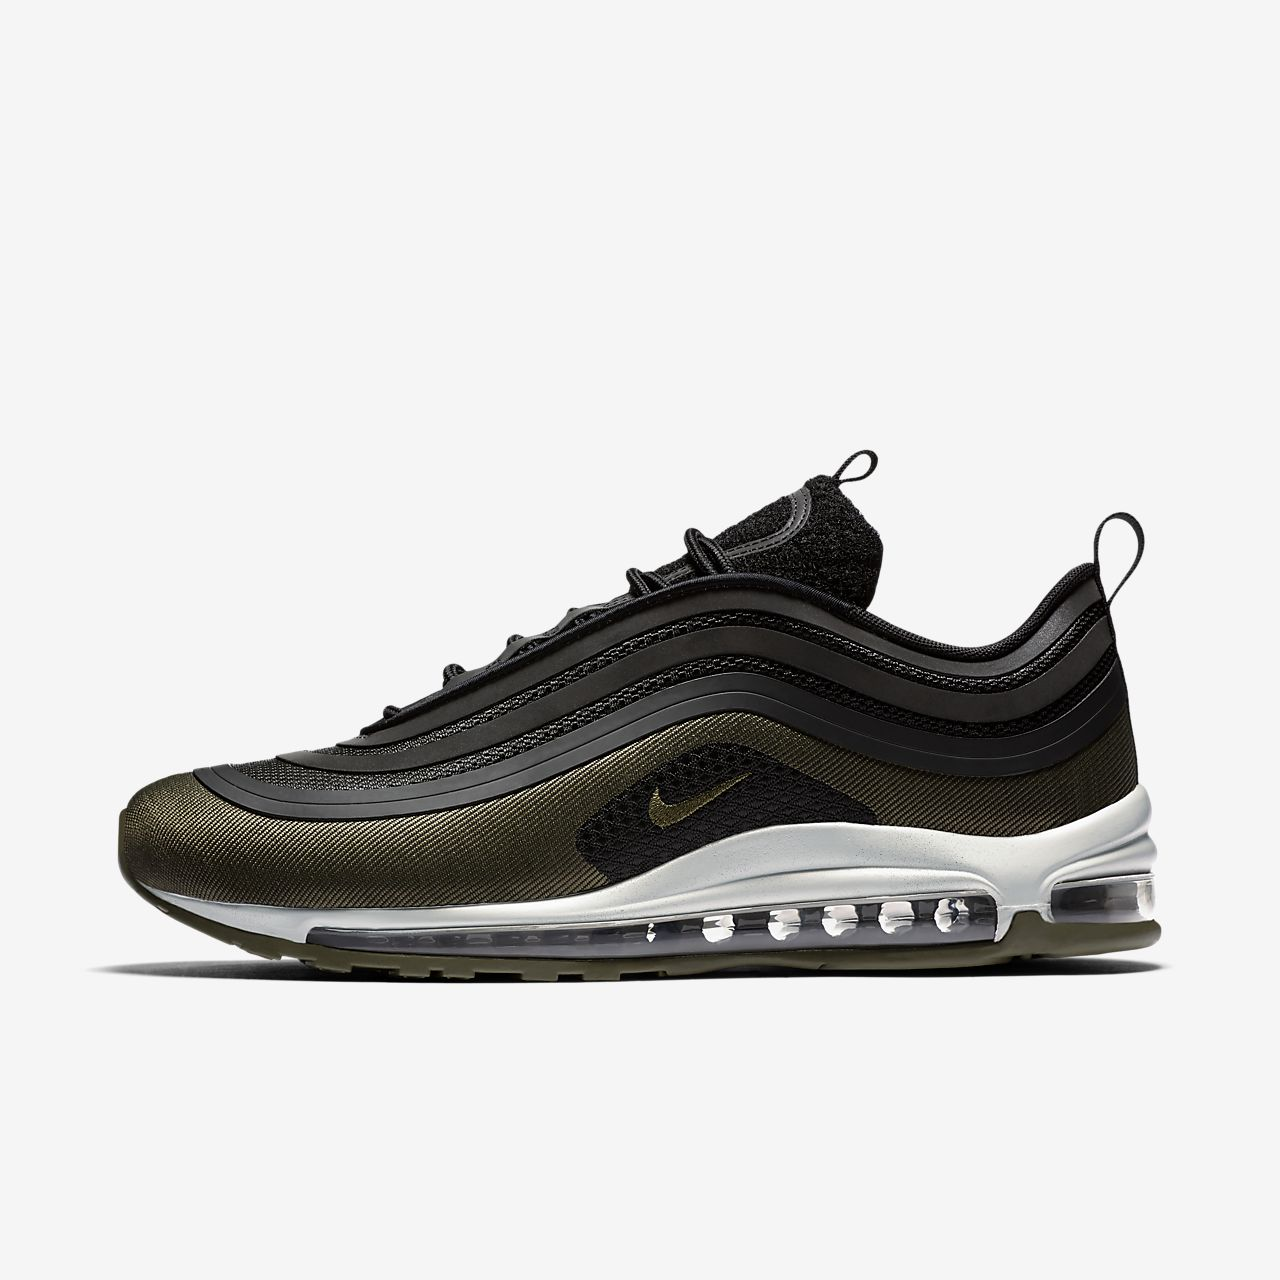 Nike Air Max 97 Ultra 17 Footlocker